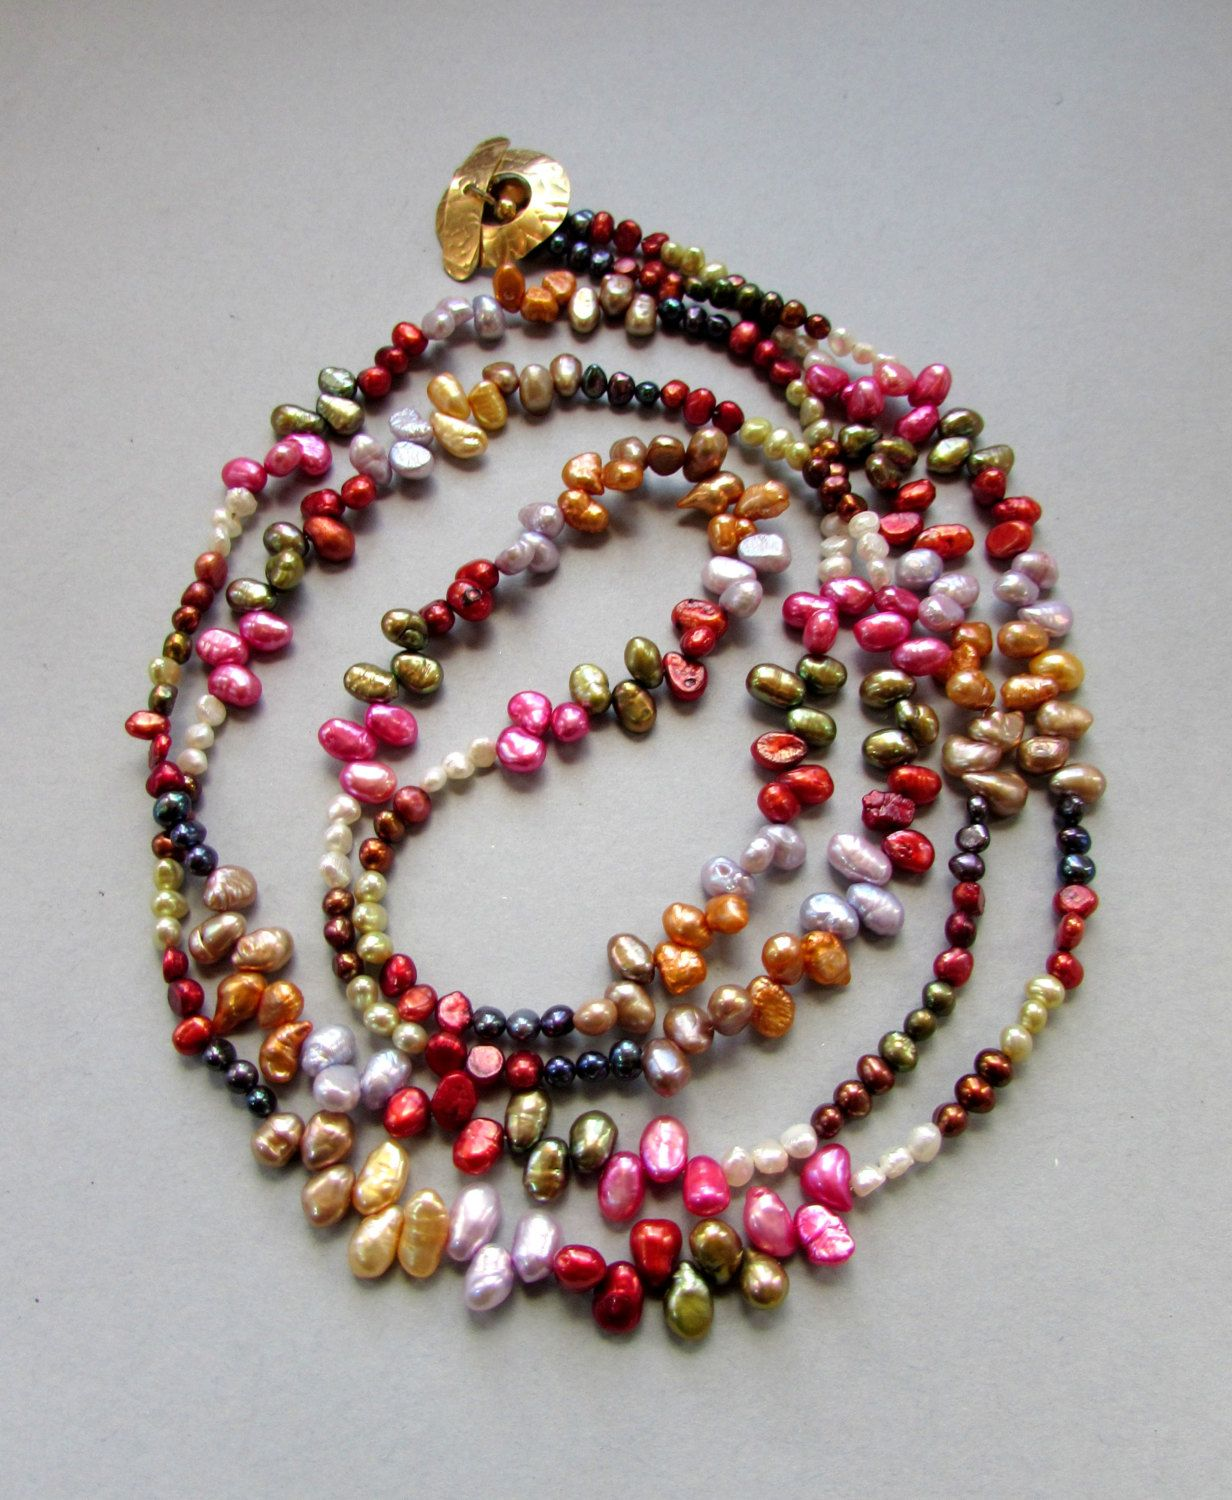 She Wore a Pearl Necklace - Extra Long Necklace of Multi-color Freshwater Pearls Boho, Gypsy, Hippie, Shabby Cottage Chic, Gift for Her by Chilirose on Etsy